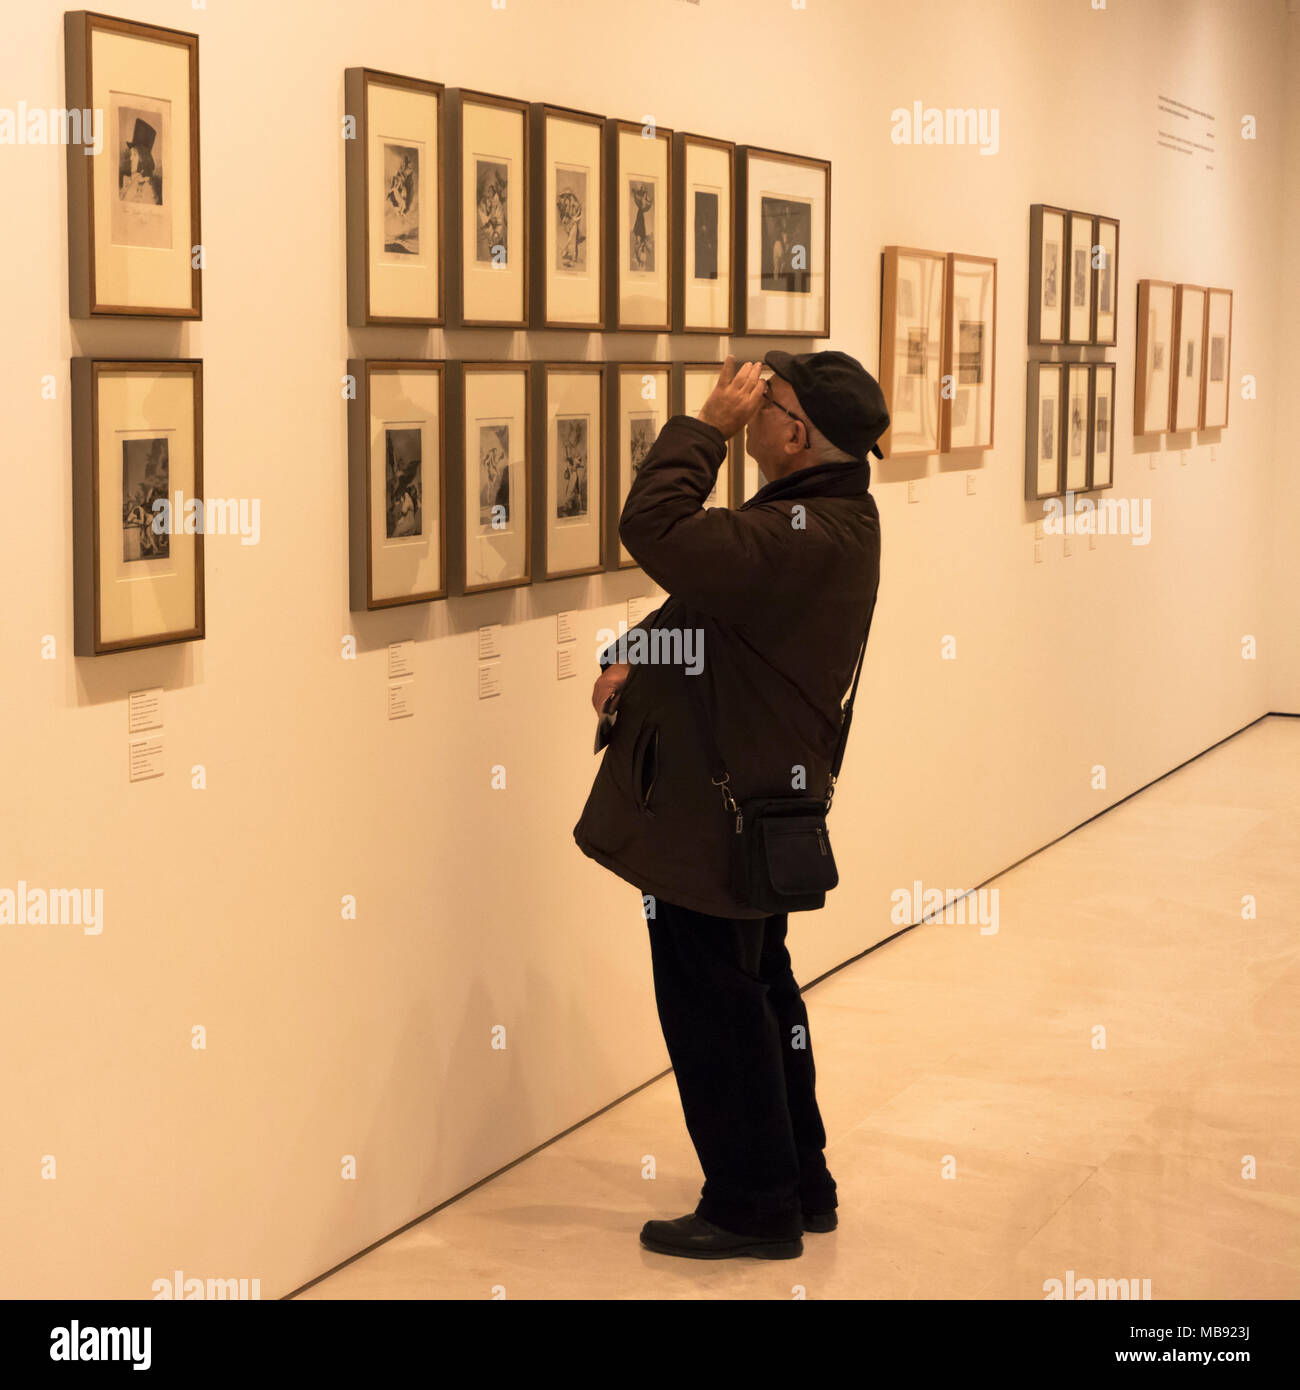 Man studying Francisco Goya etchings in the Museo Carmen Thyssen, Malaga, Costa del Sol, Malaga Province, Andalusia, southern Spain. - Stock Image